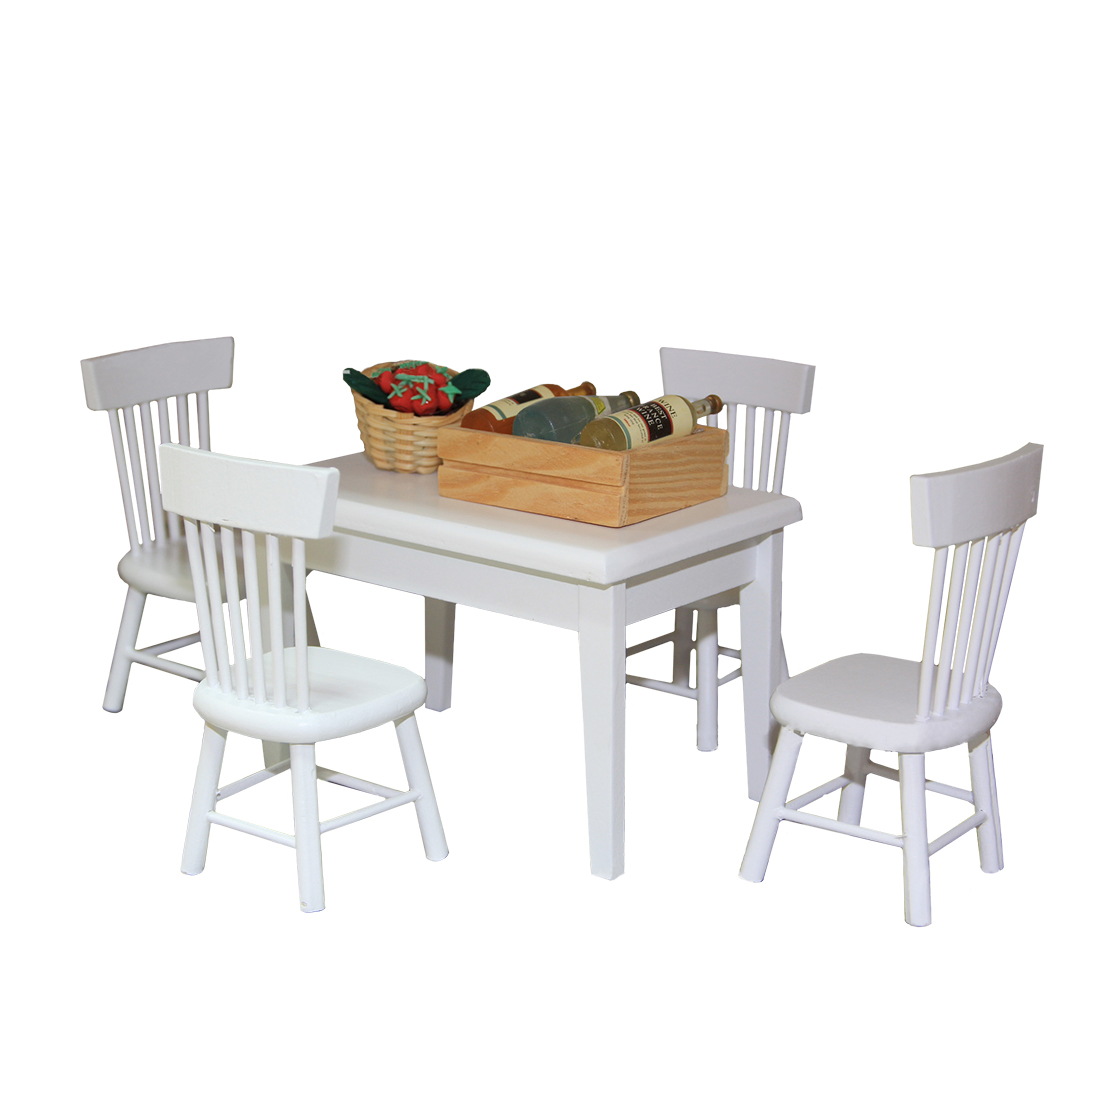 Brilliant Us 10 11 33 Off 1 12 Birch Children Diy Kitchen Pretend Play Toys Dining Table Chair Set For Girls Kids Playing Kitchen Kits 2018 New Arrival In Caraccident5 Cool Chair Designs And Ideas Caraccident5Info